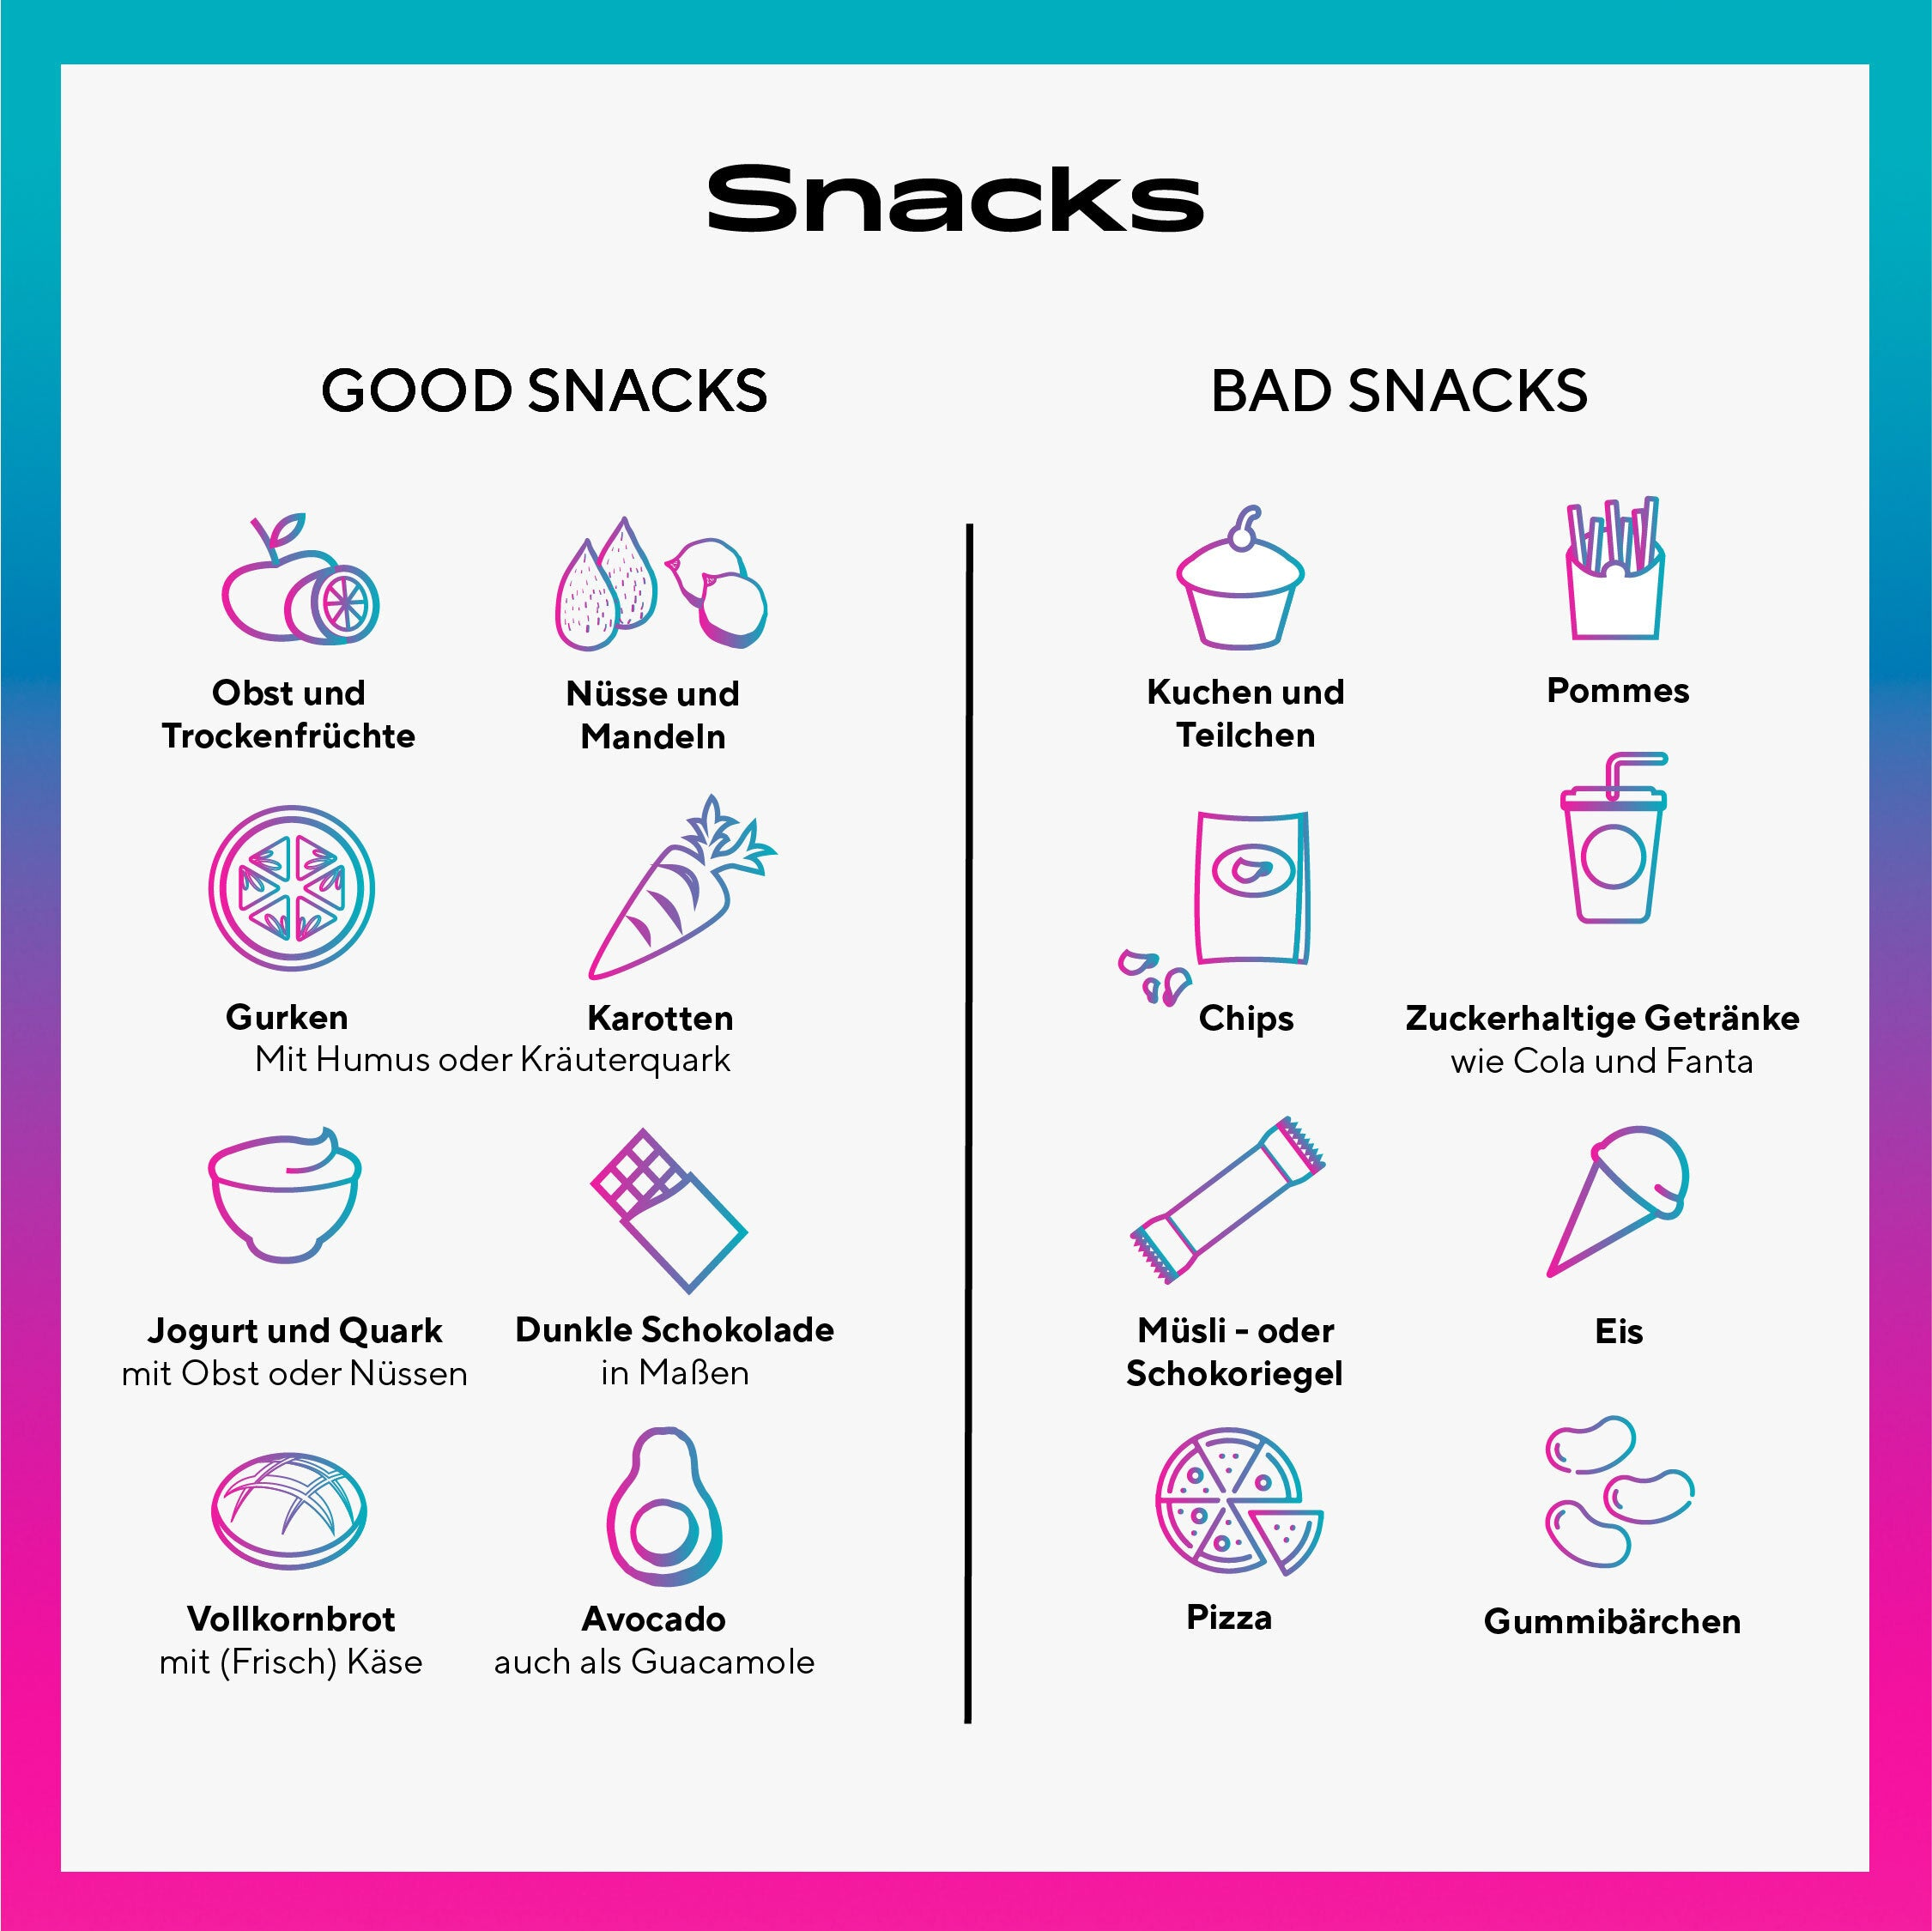 Healthy snacks vs. unhealthy snacks